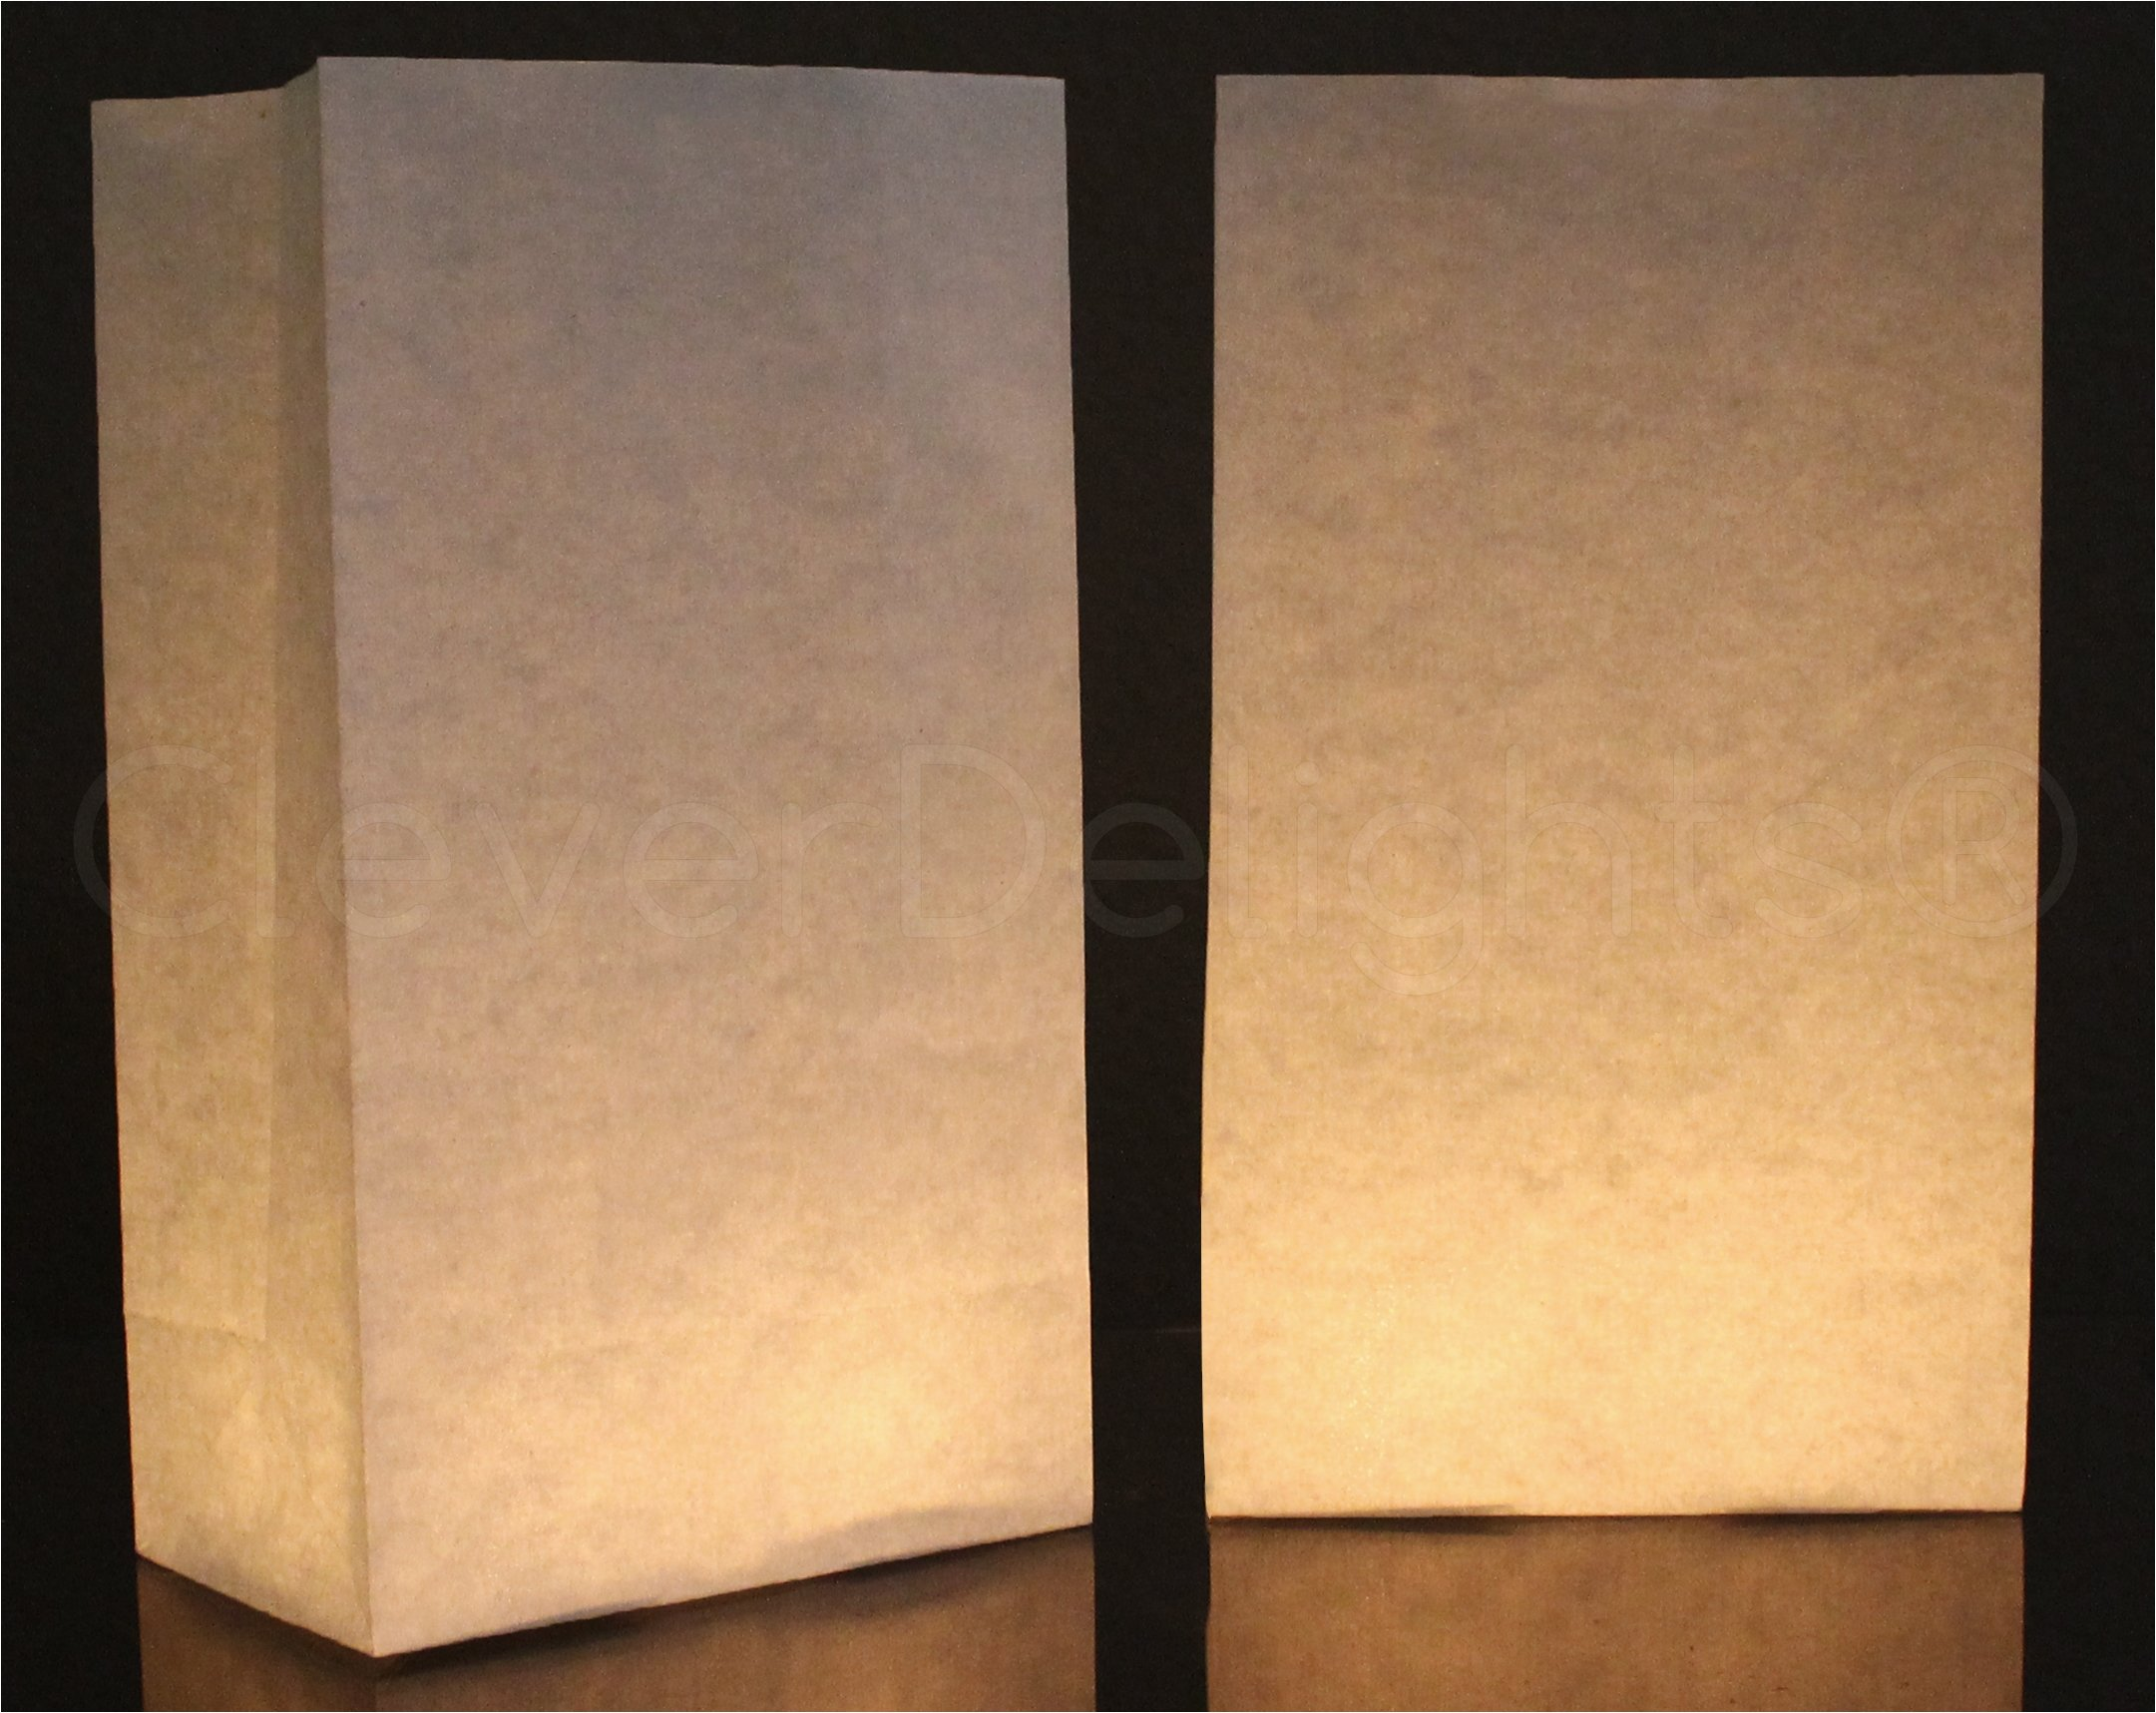 50 Pk - CleverDelights White Luminary Bags - Flame Resistant Paper - Wedding Christmas Holiday Luminaria